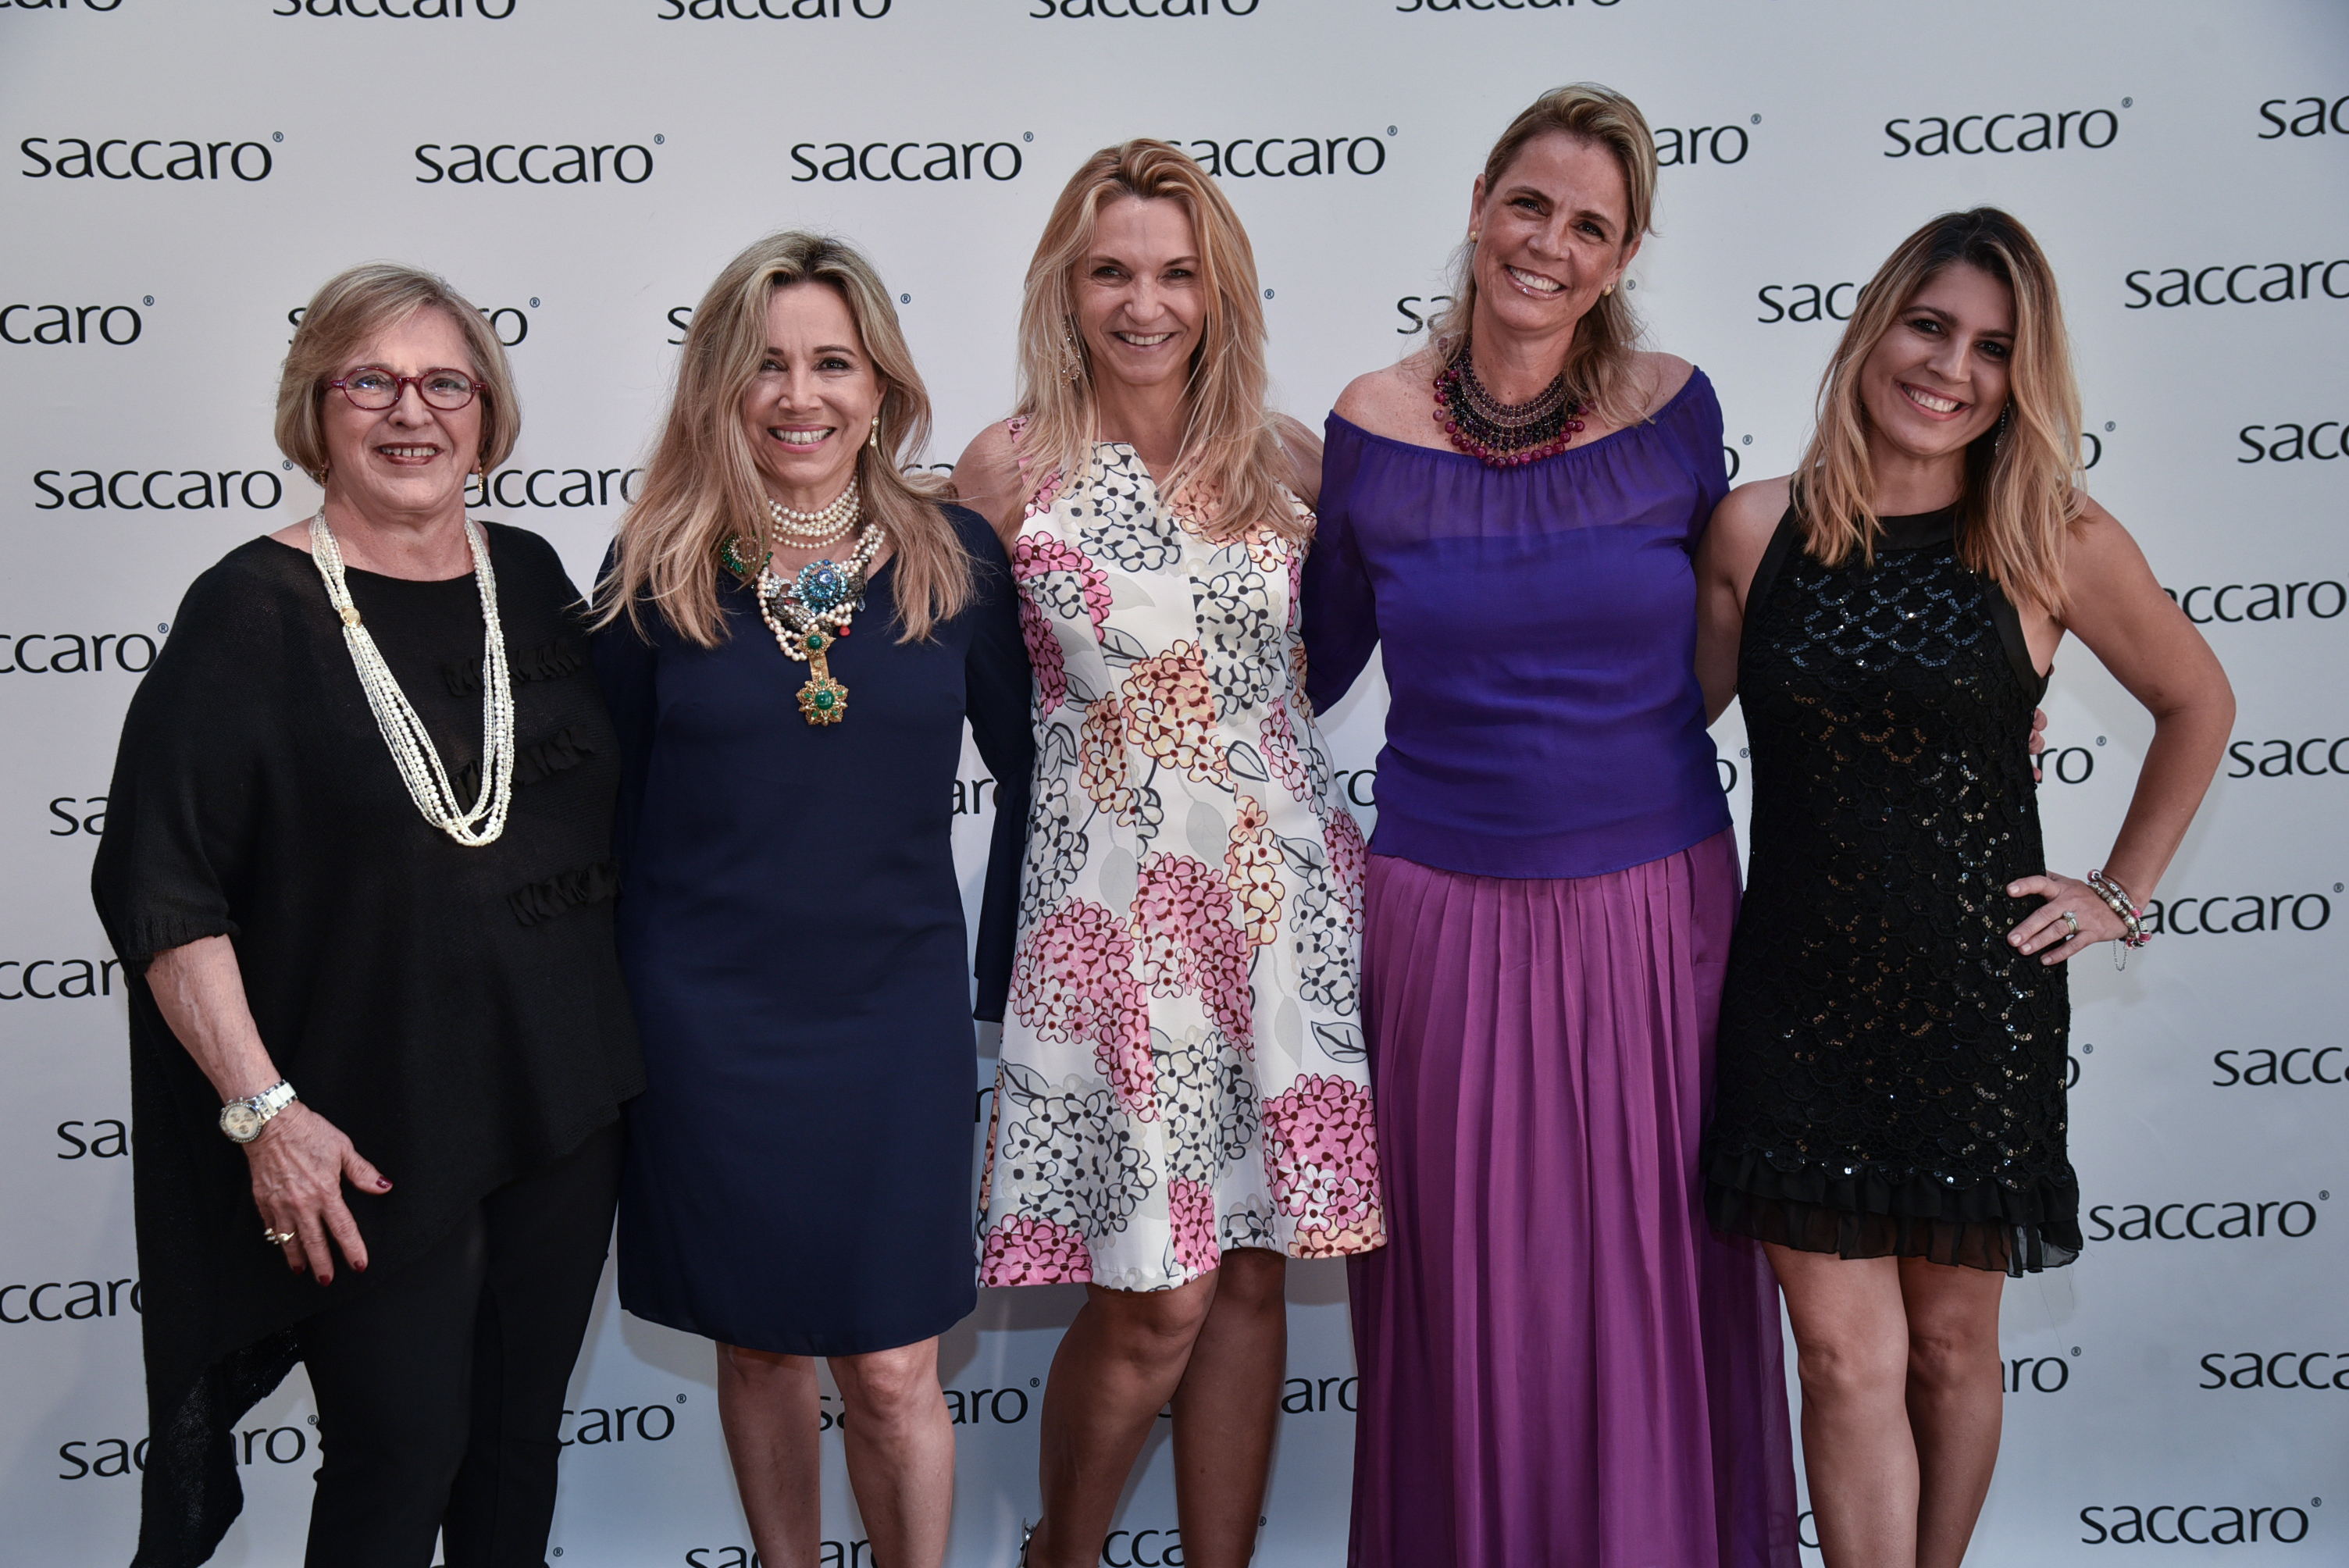 Saccaro BrazilFoundation Women for Women